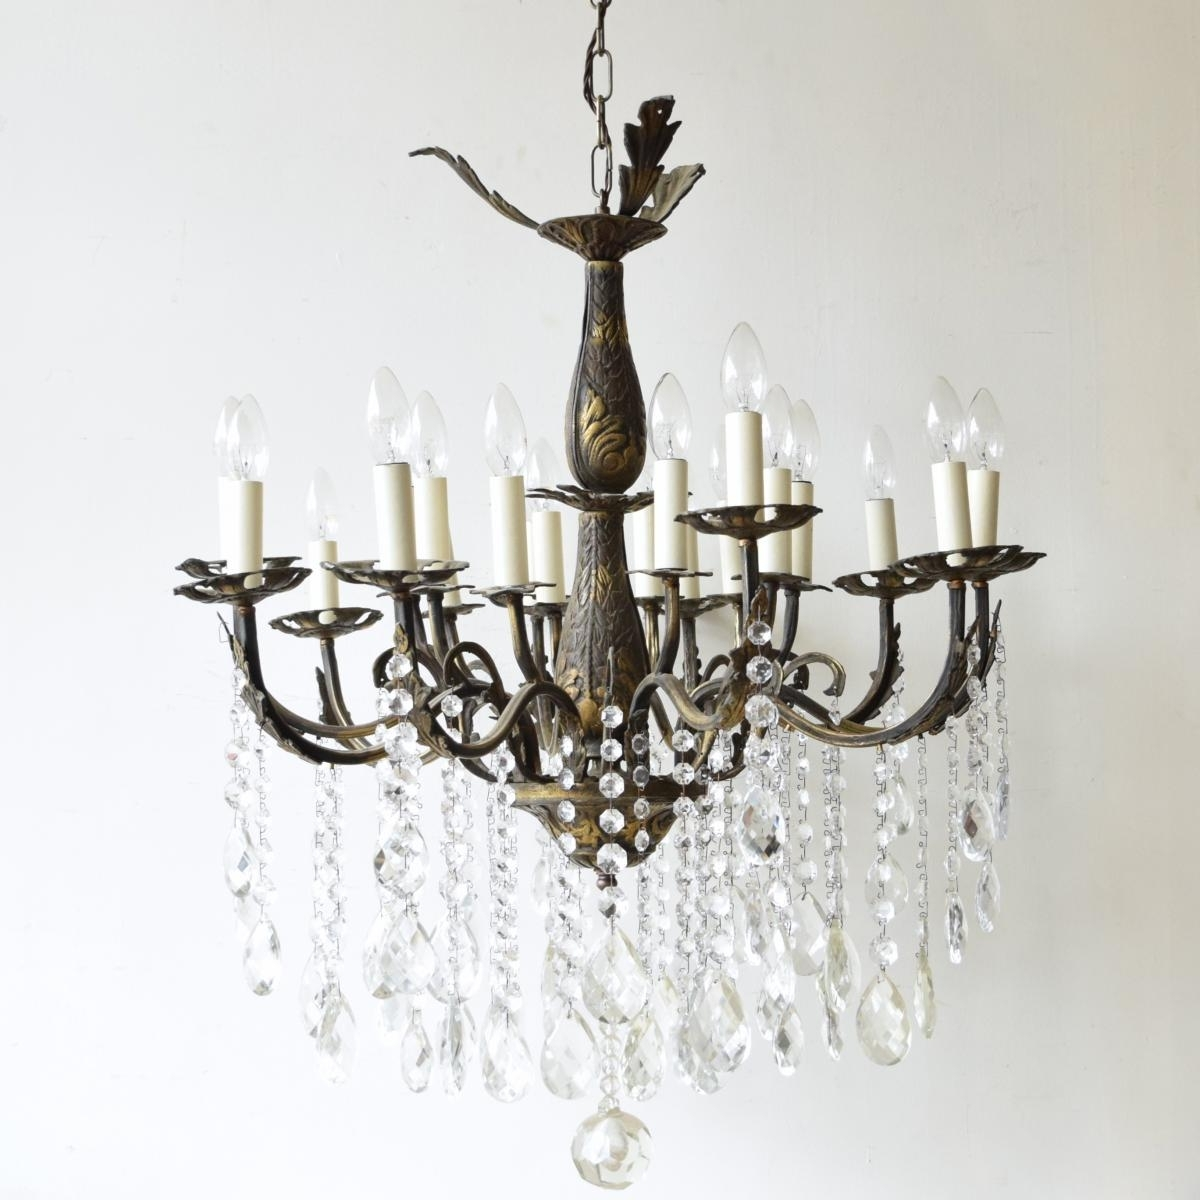 Recent Large Vintage French 16 Light Brass Chandelier For Sale At Pamono In Chandeliers Vintage (View 7 of 20)